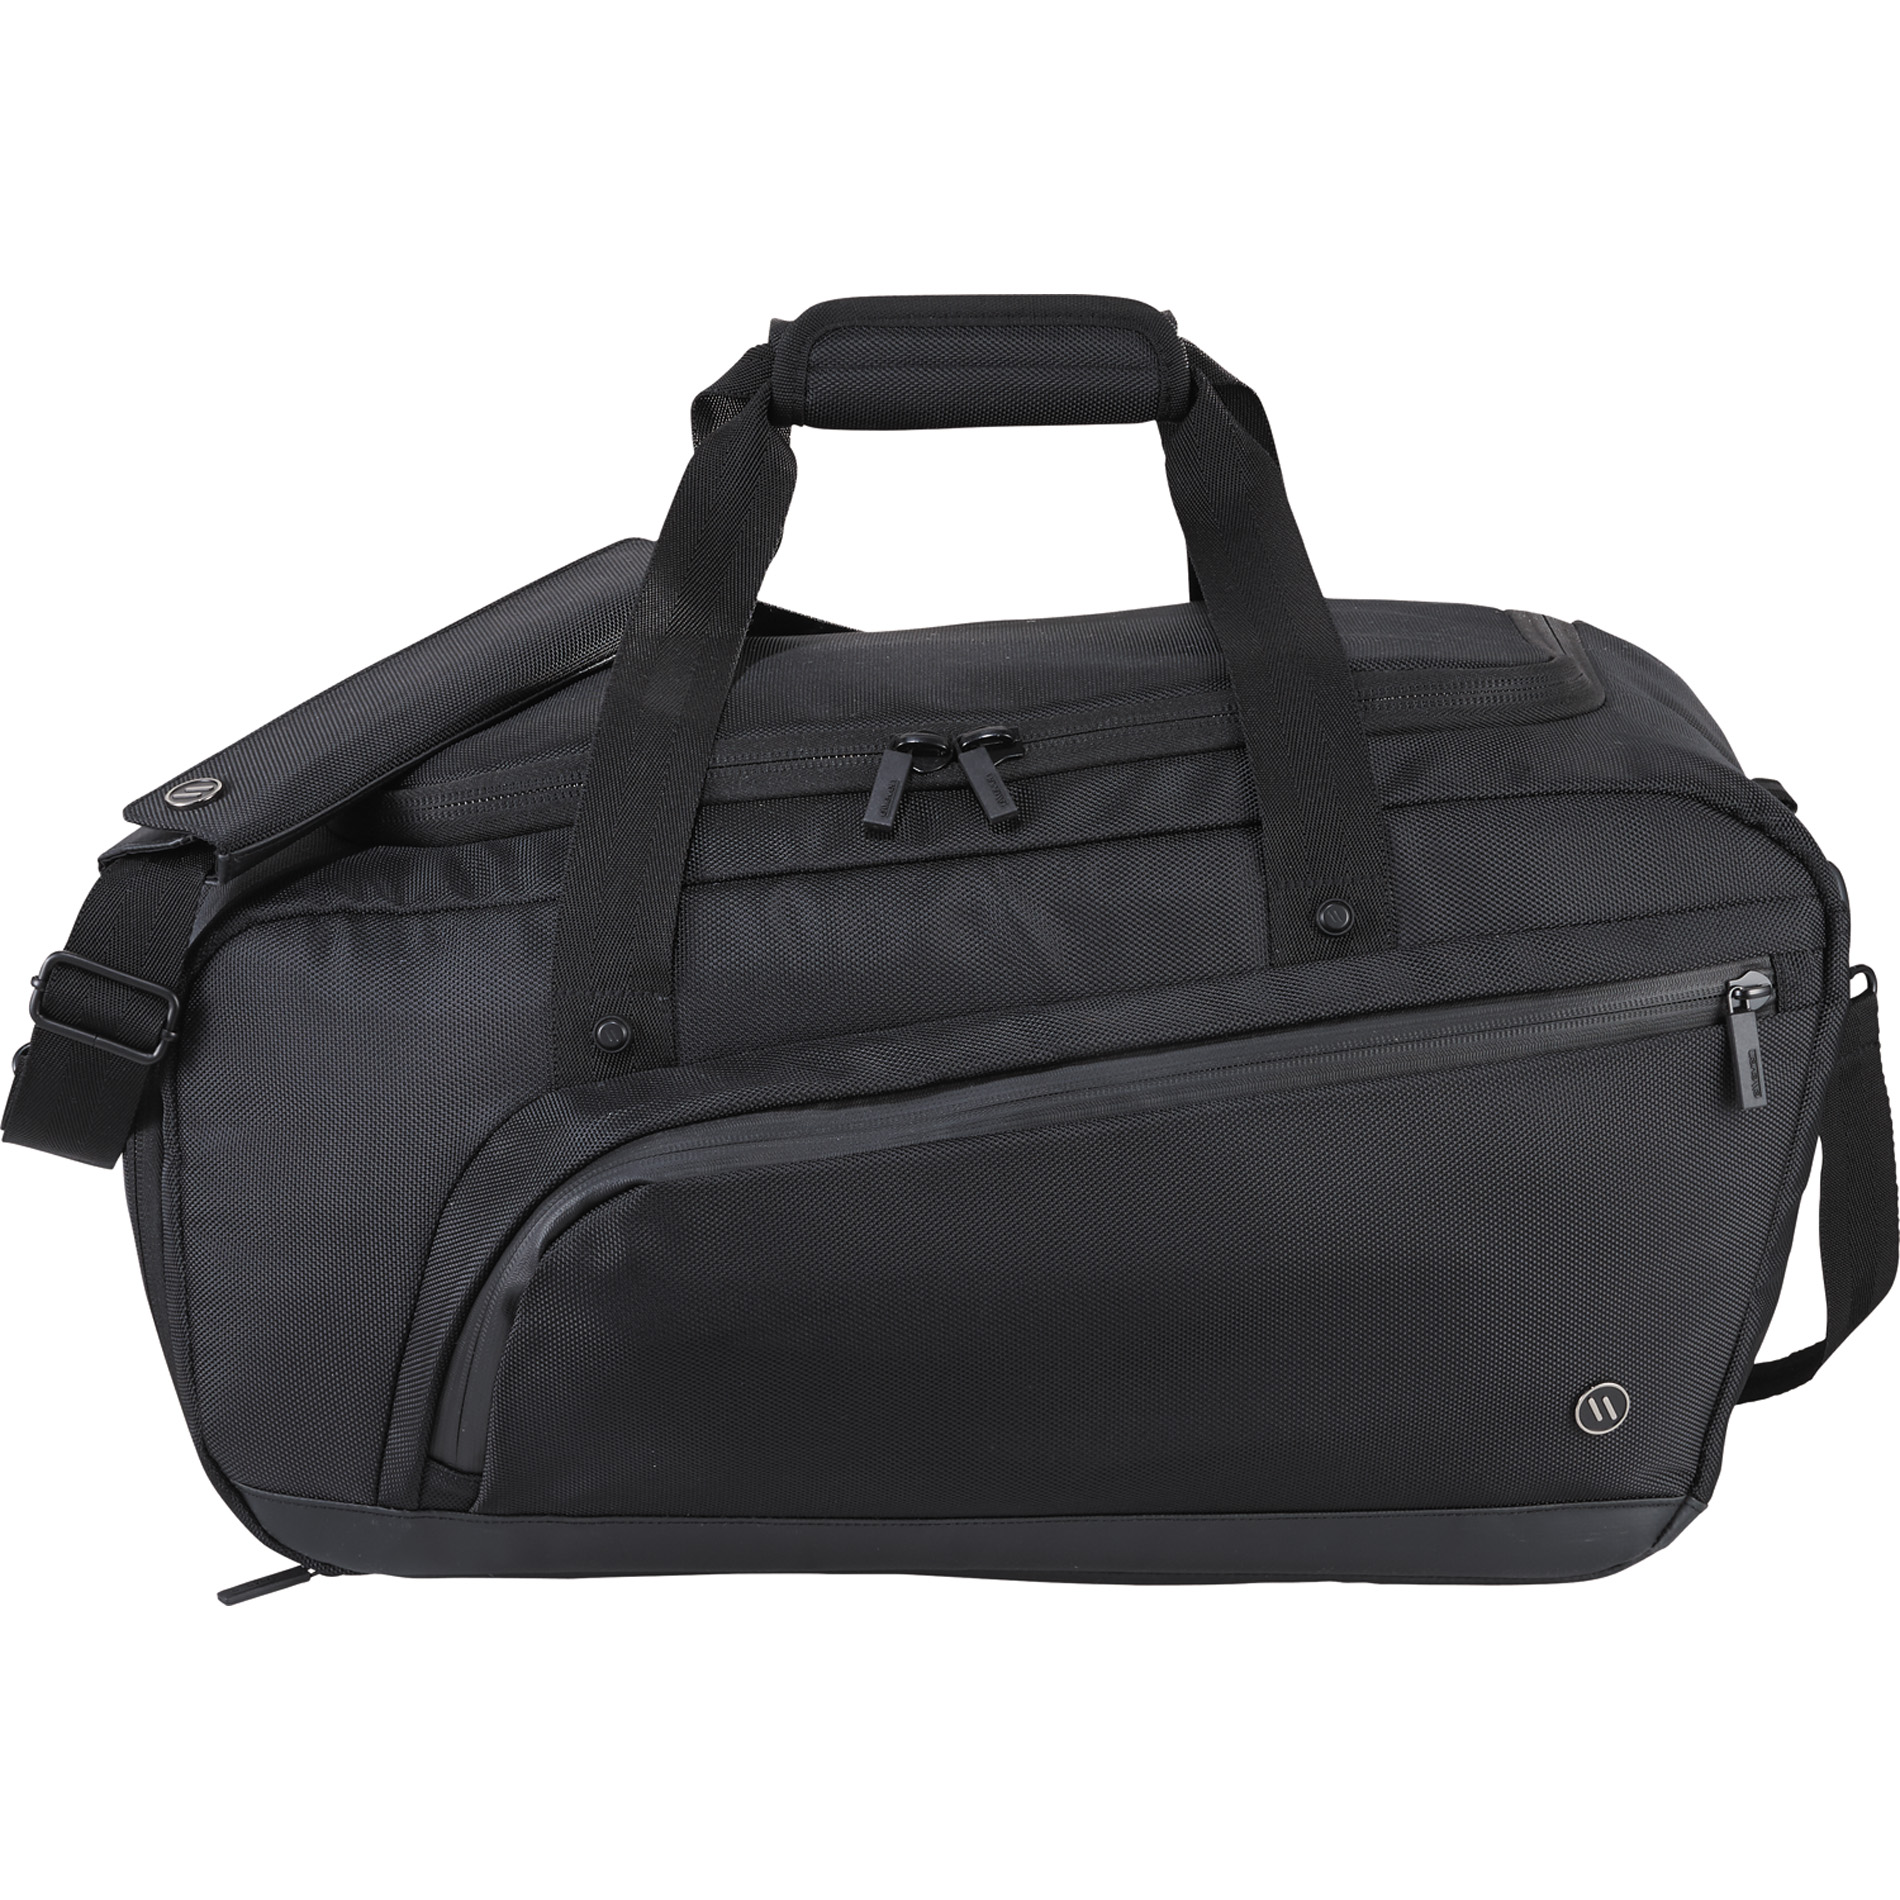 "elleven 0011-64 - Shift 21"" Duffel Bag"